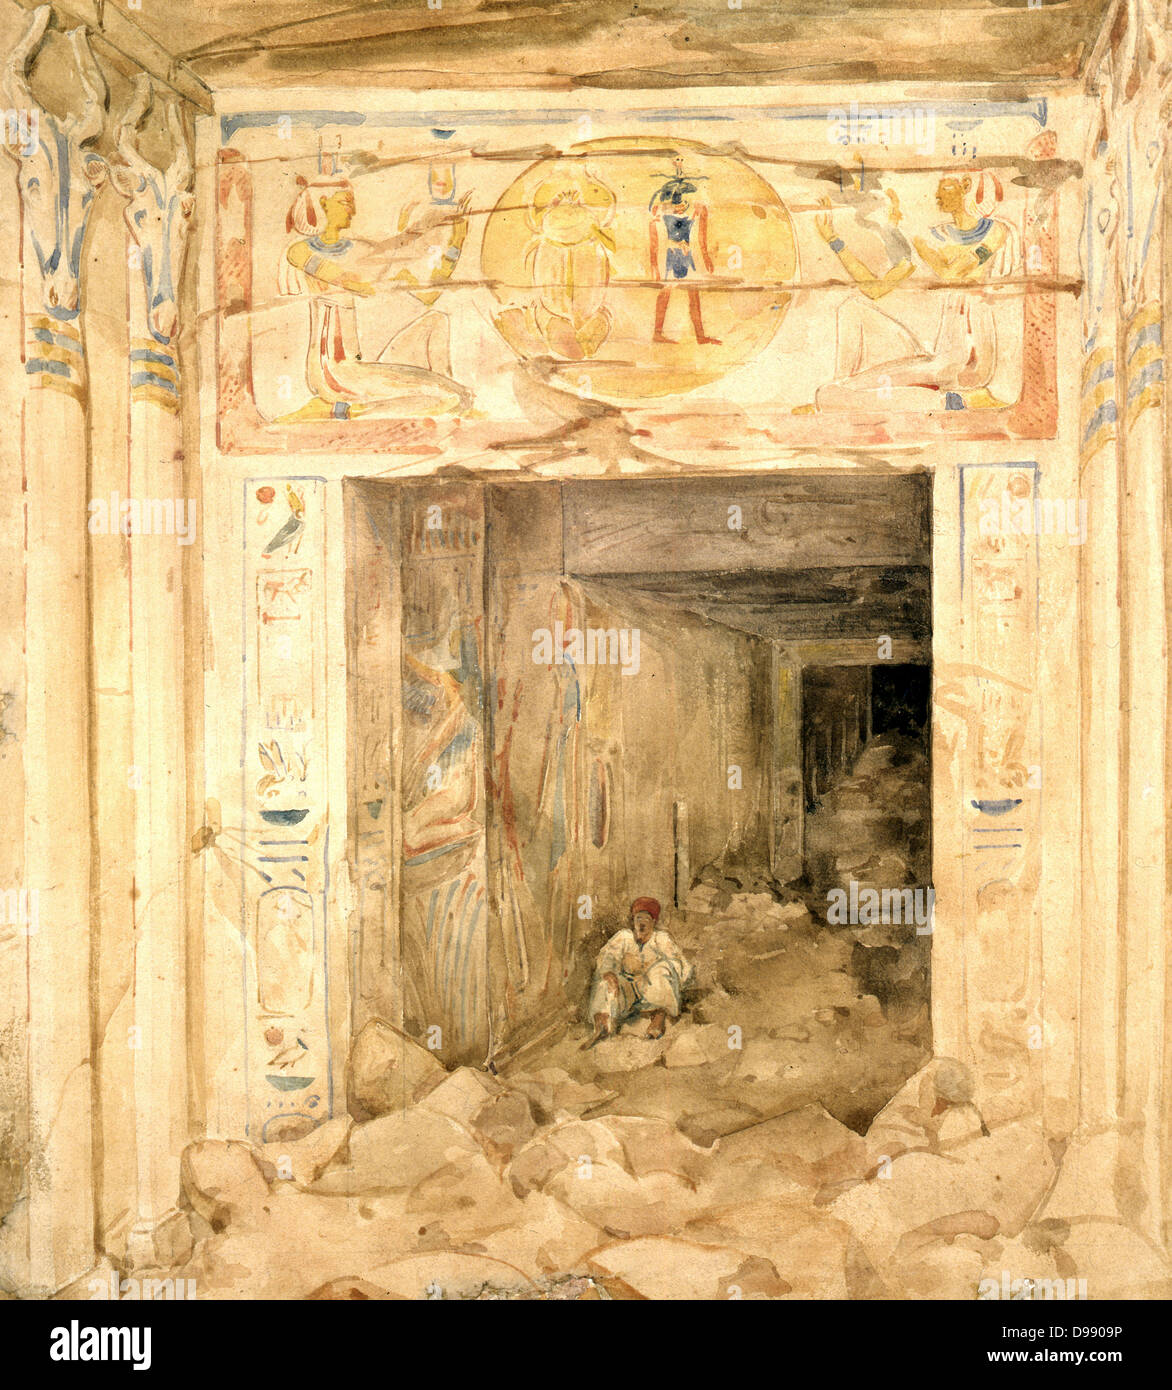 Ruined interior of the Temple at Esneh (Esne), Upper Egypt. Watercolour by Hector Horeau (1801-1872) French Architect. - Stock Image